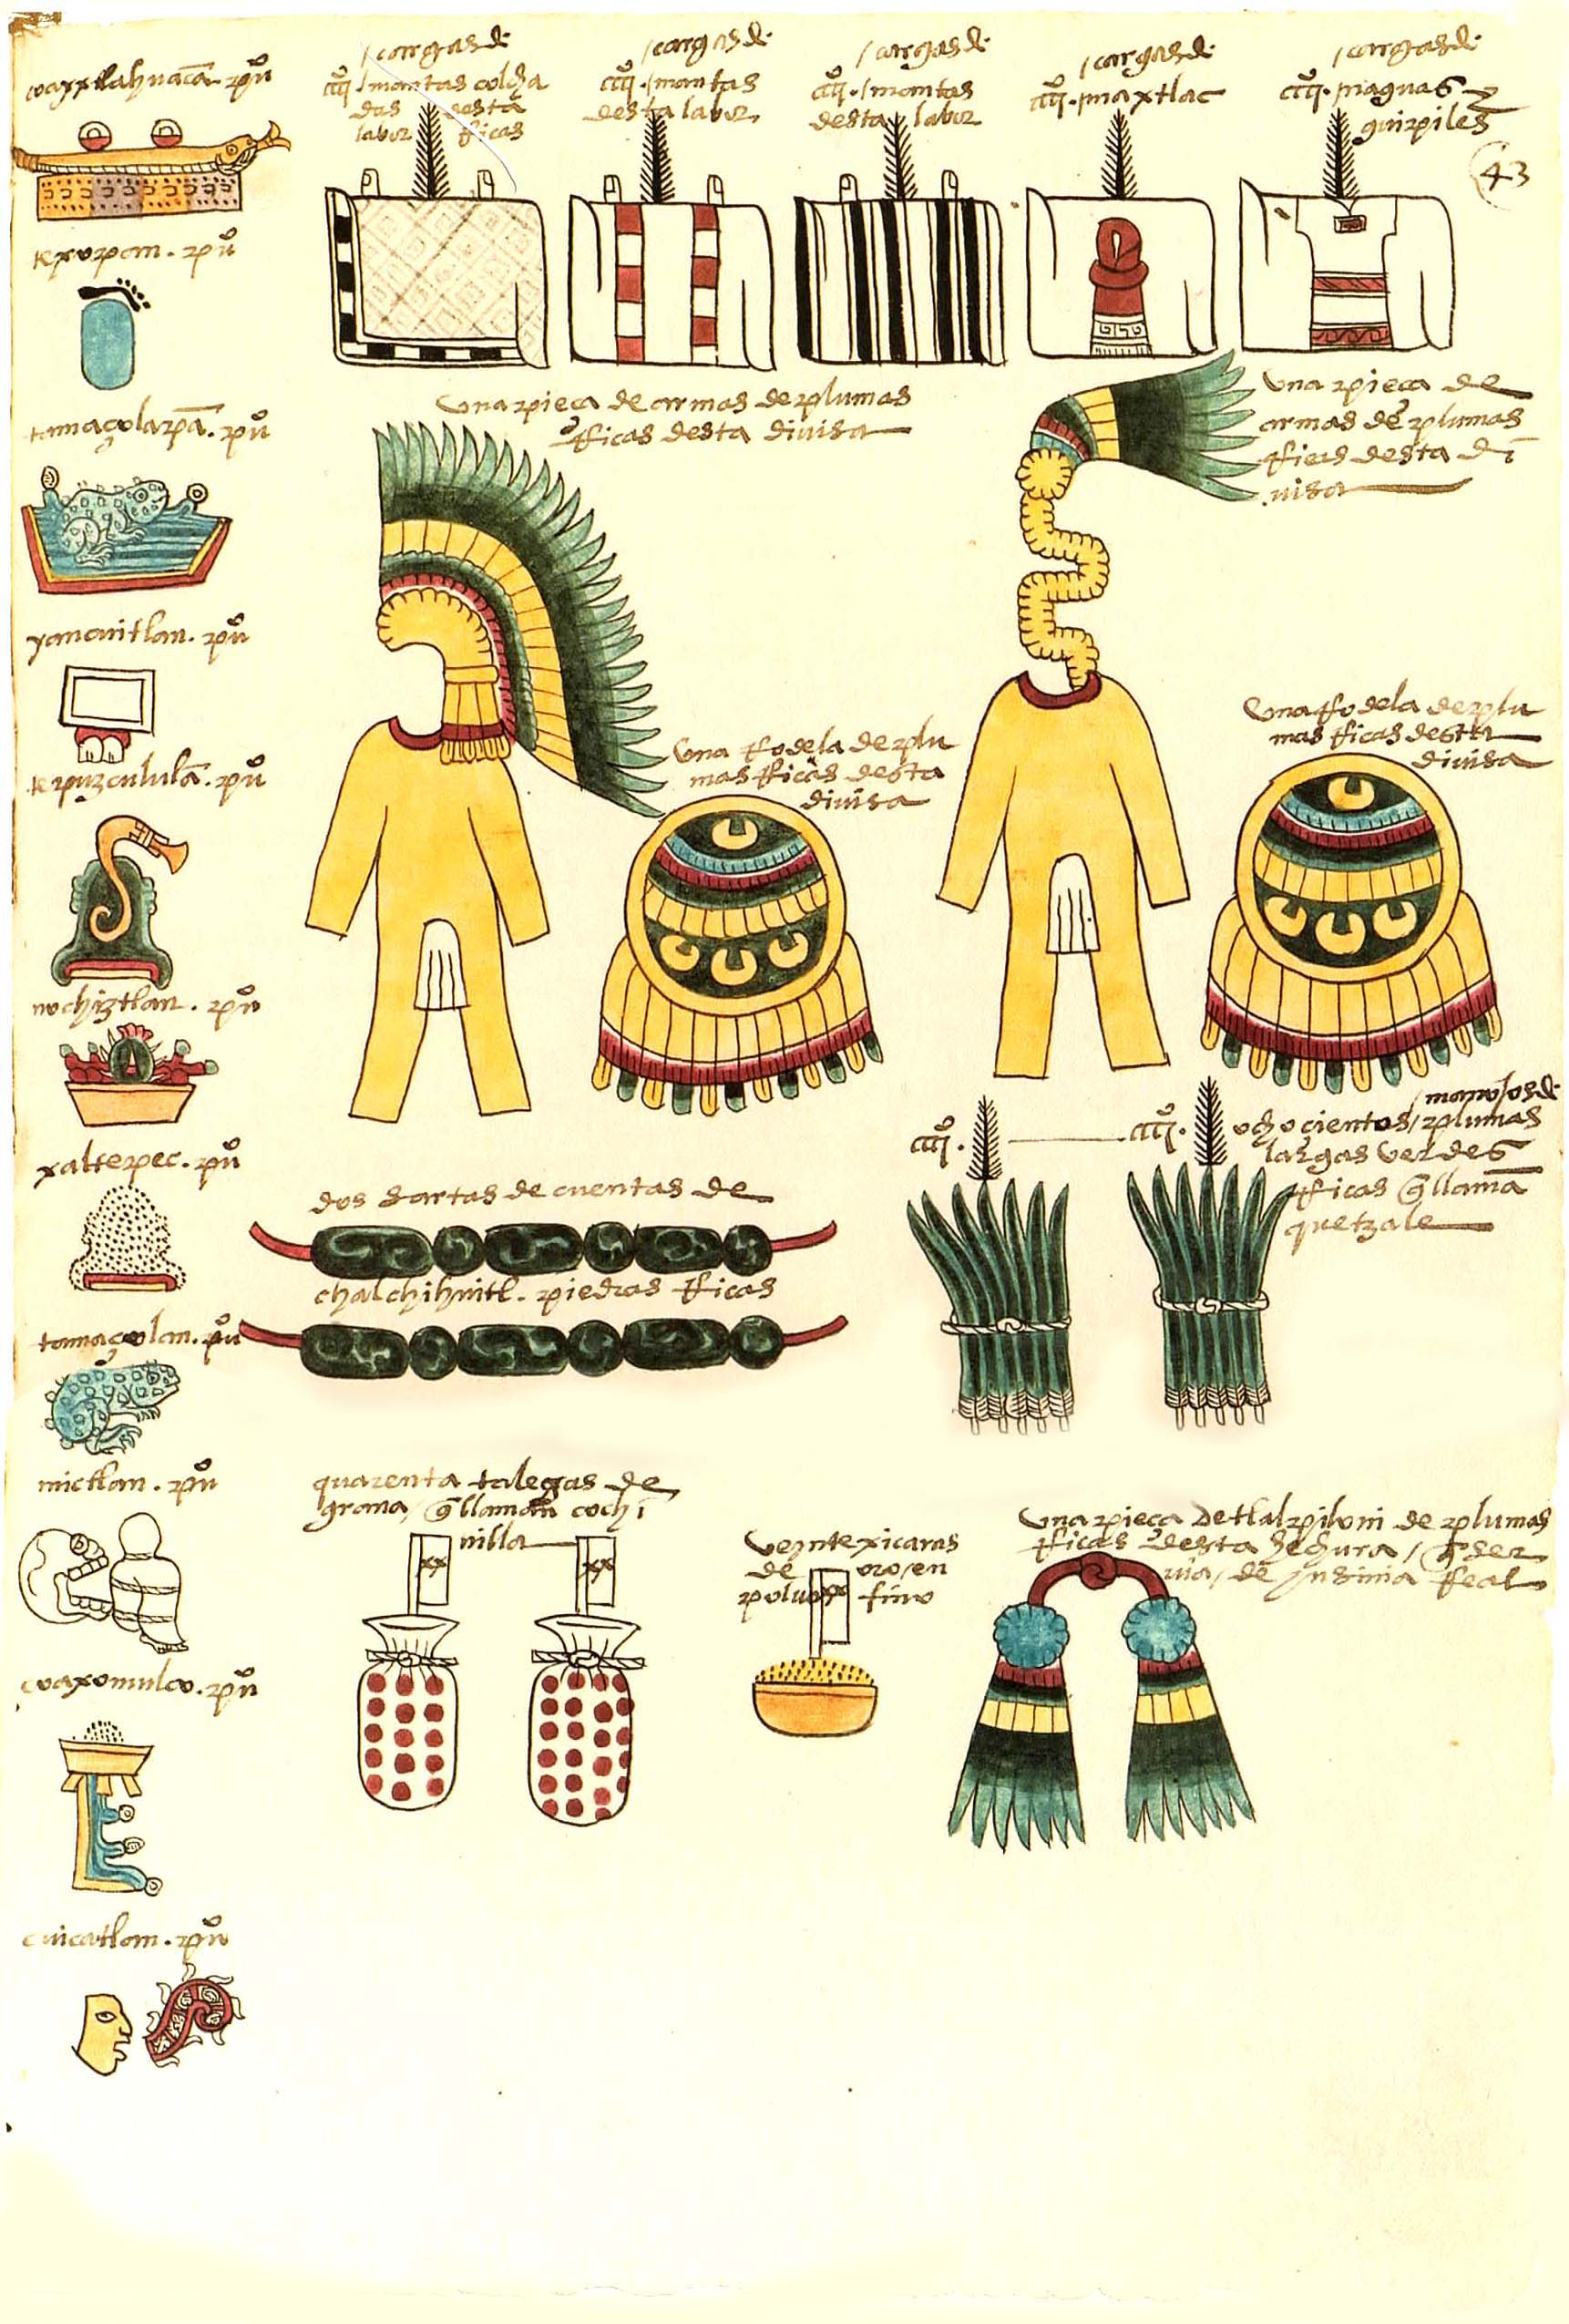 Codex Mendoza Teposcolula tribute